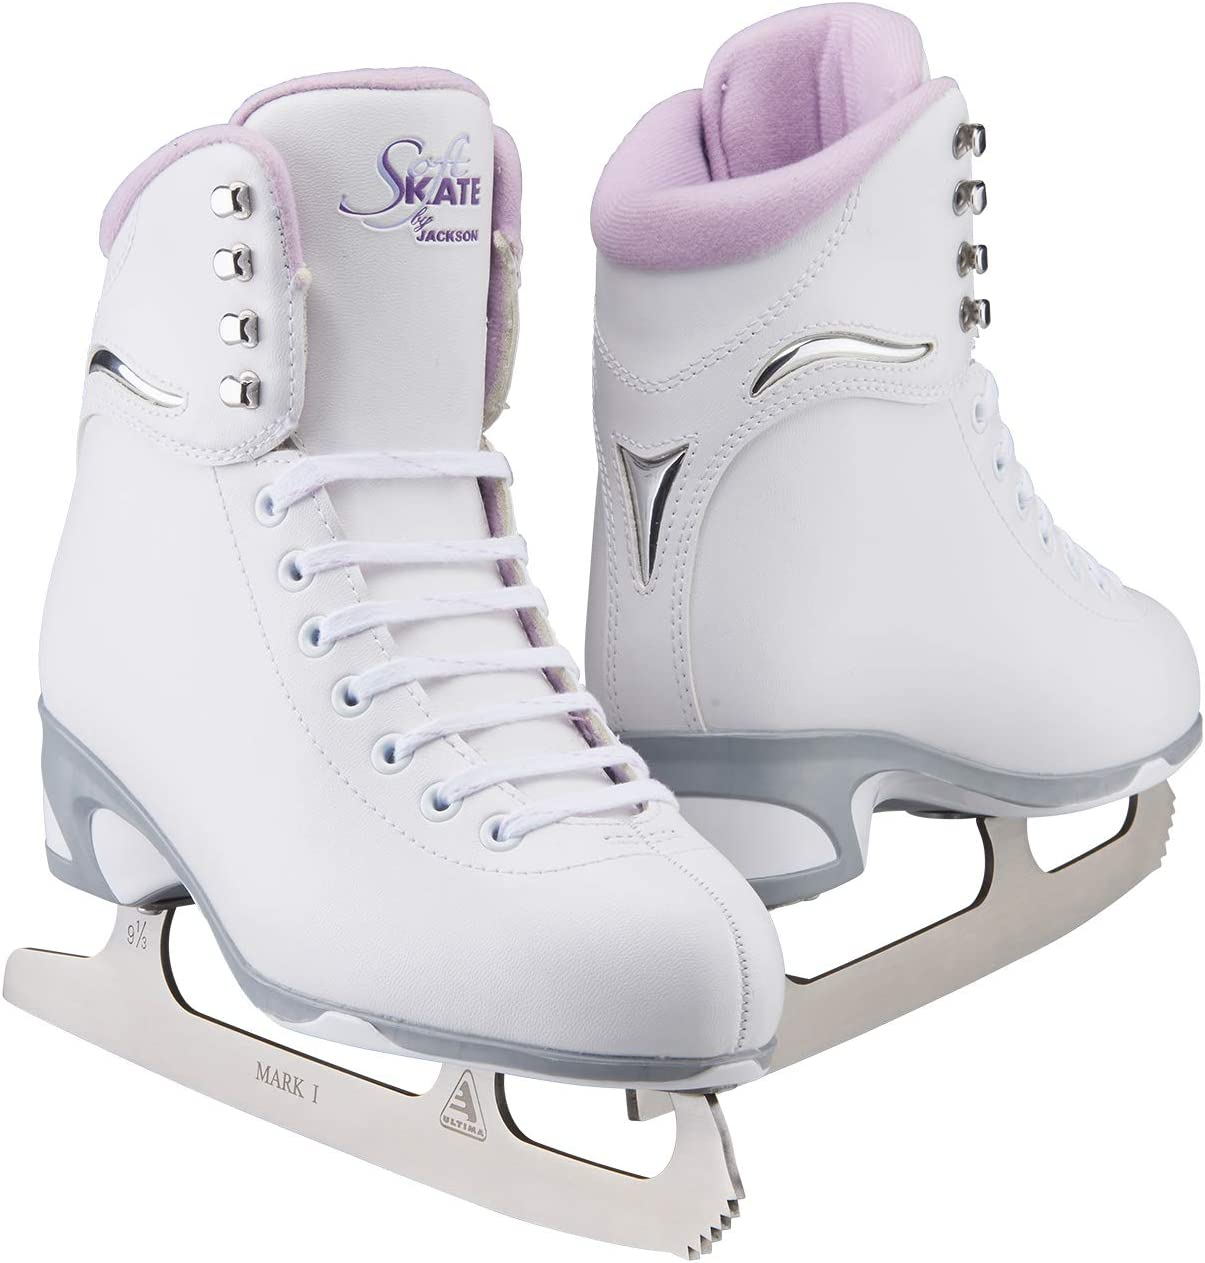 Jackson Ultima Women's/Misses/Tot's Finesse 180 High Top Lace Up Medium Support SoftSkate Figure Ice Skates